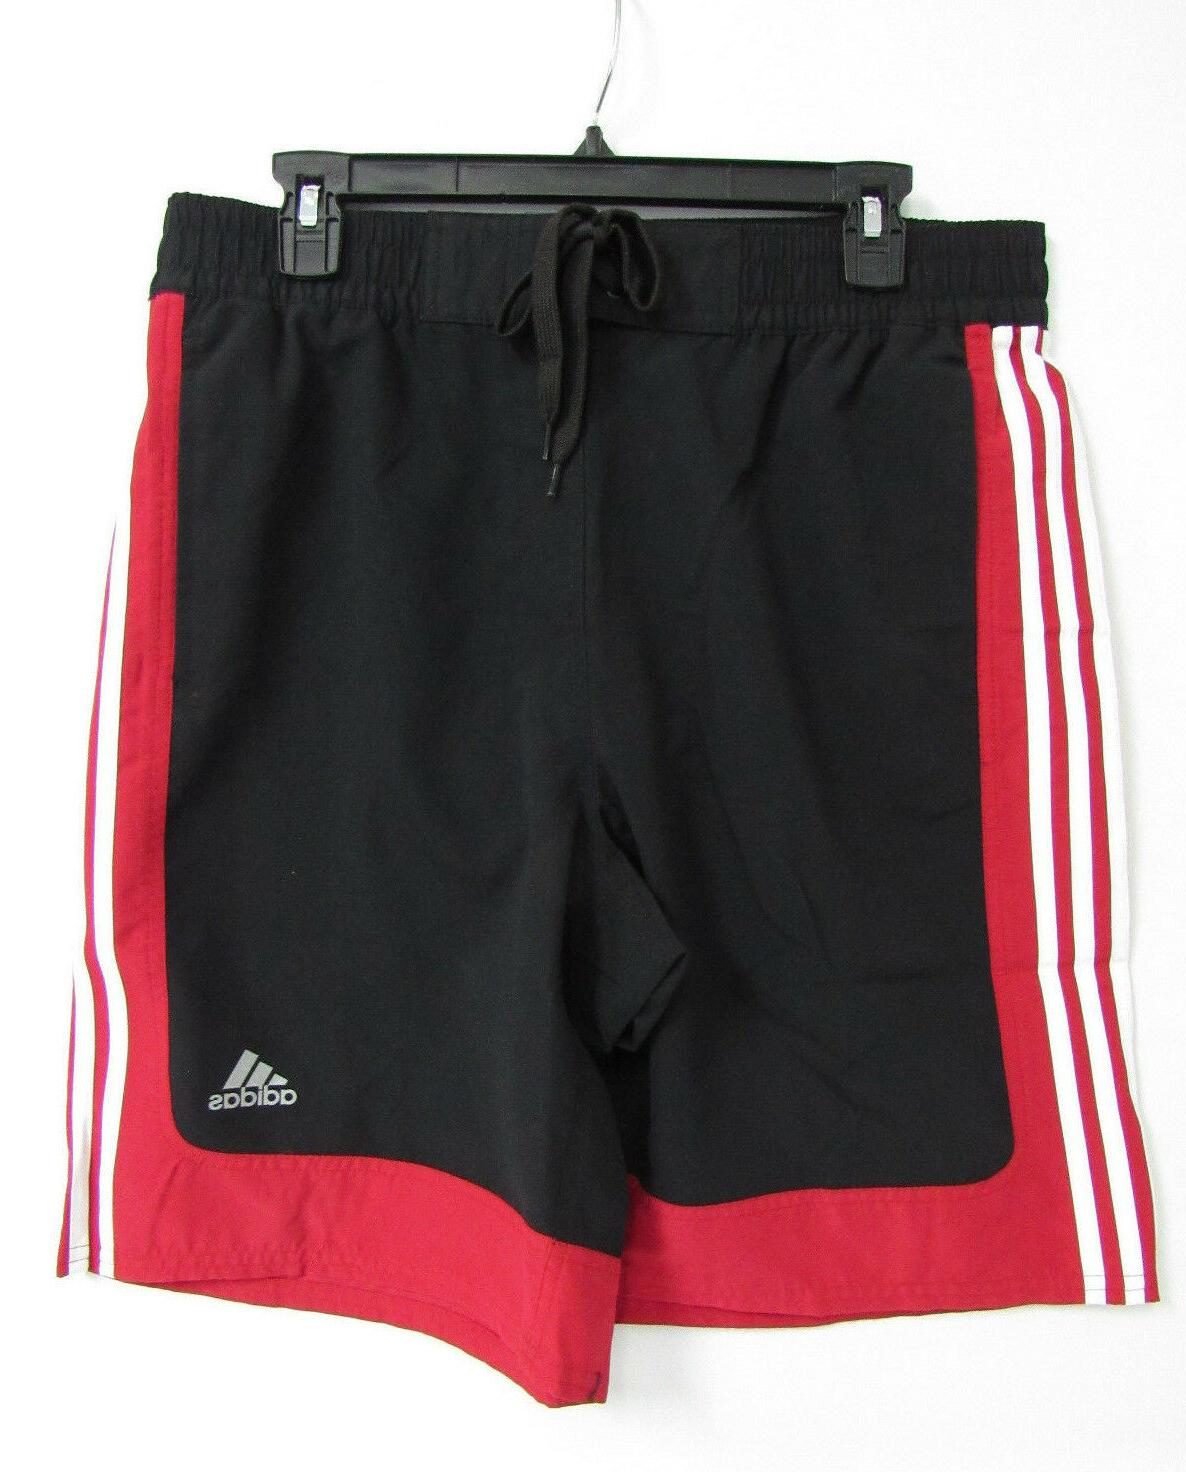 New Adidas Men/'s Amped Volley Board short Swim Shorts Striped Size LARGE